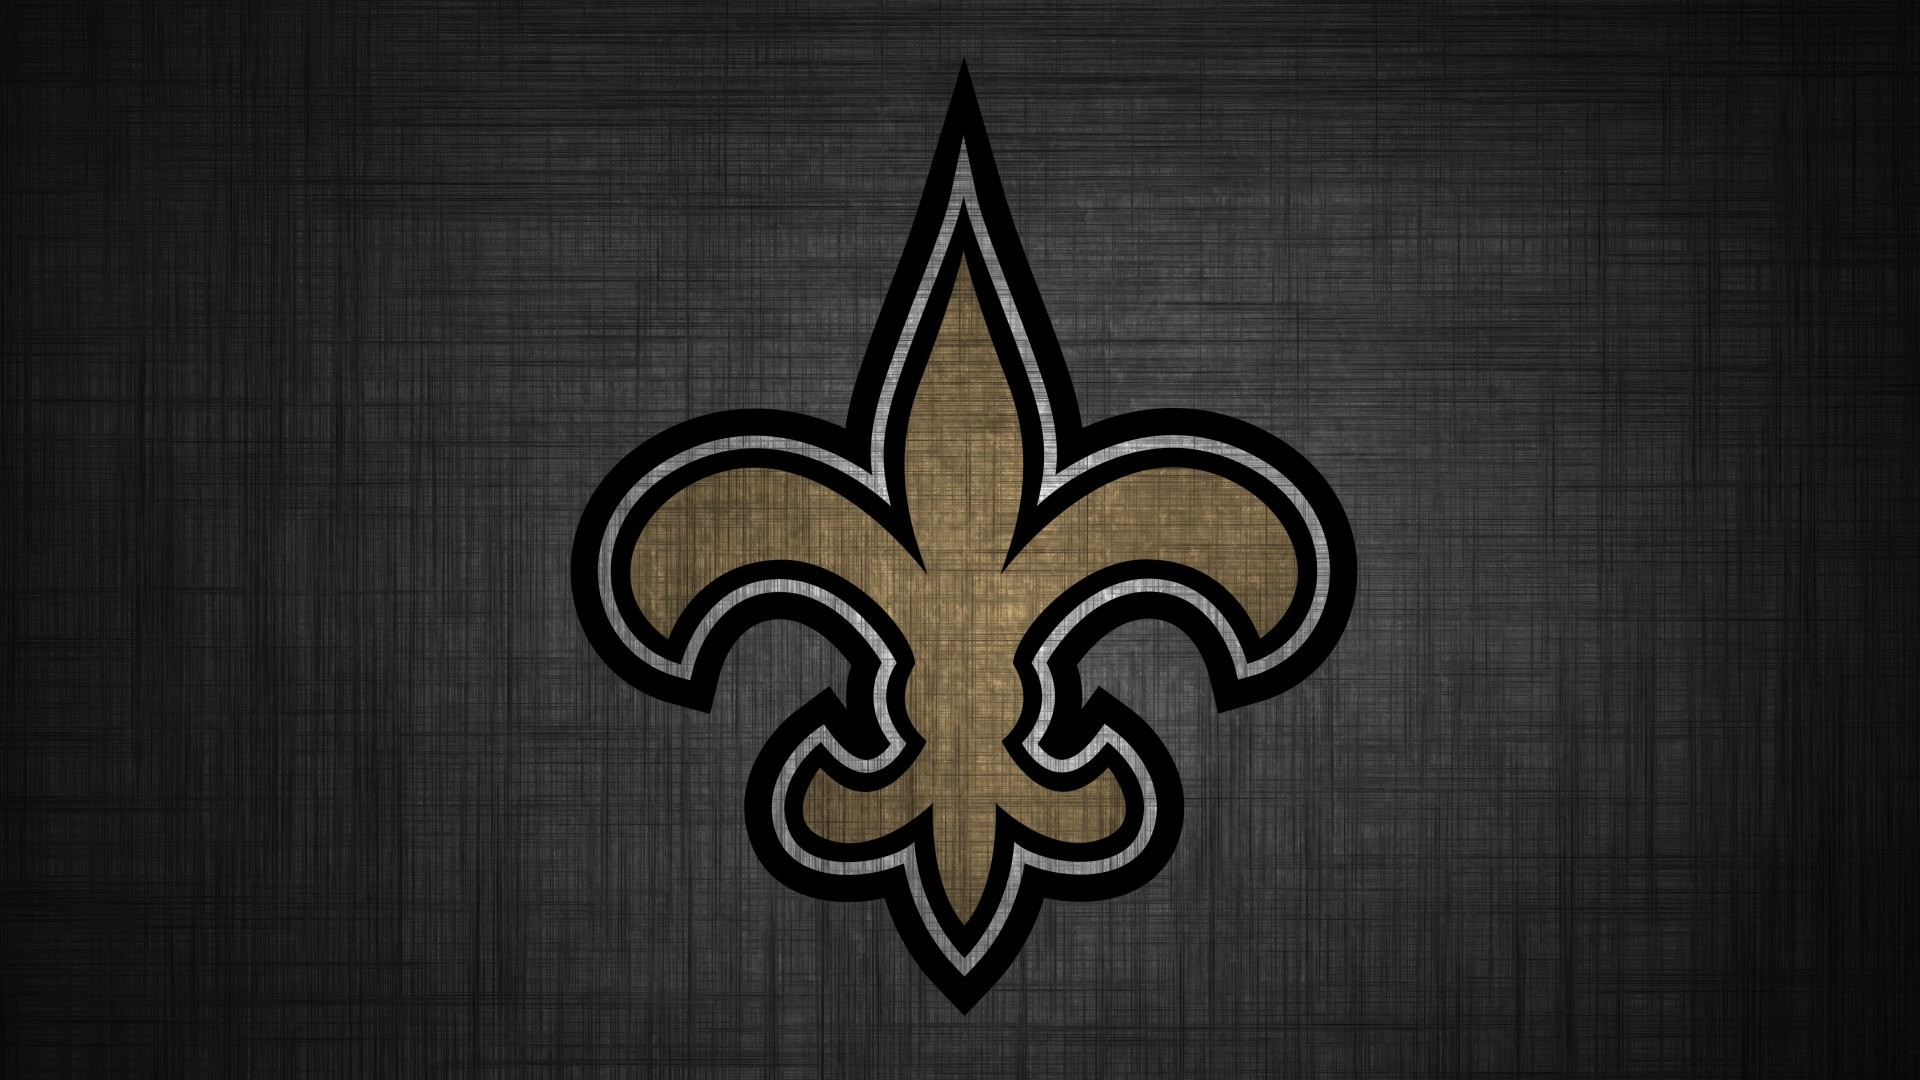 1920x1080 New Orleans Saints Logo Desktop Wallpaper 56000